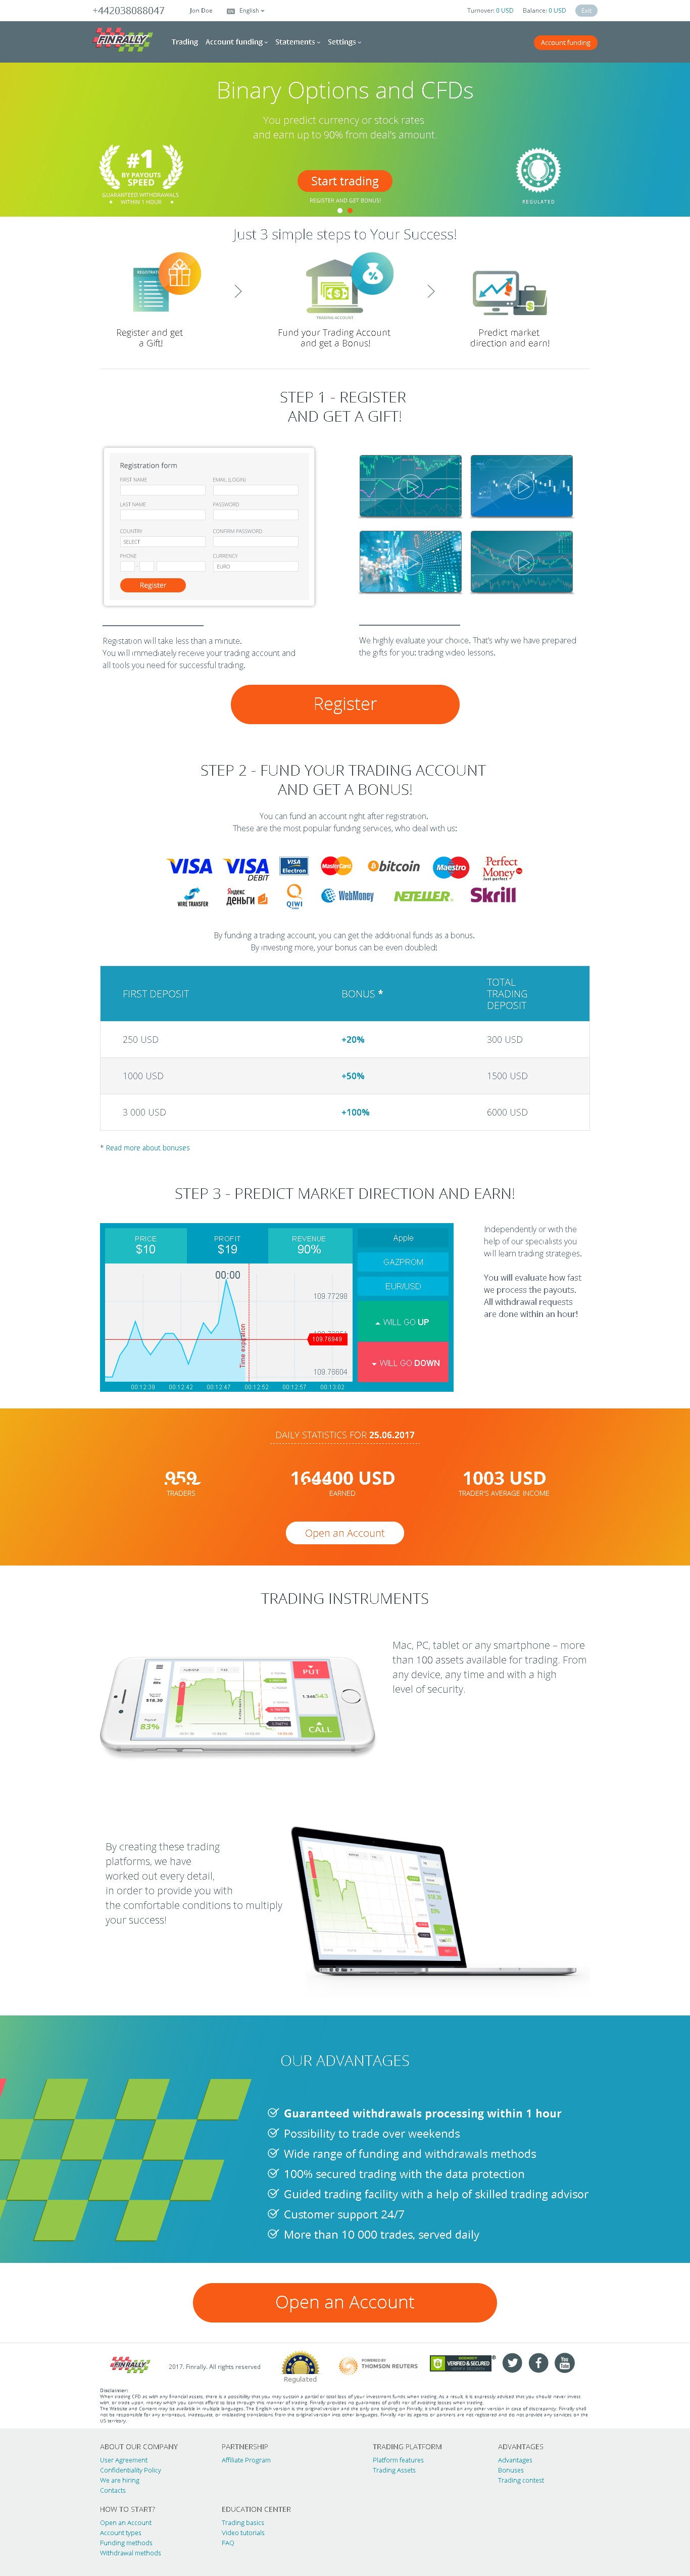 Finrally binary options rewil